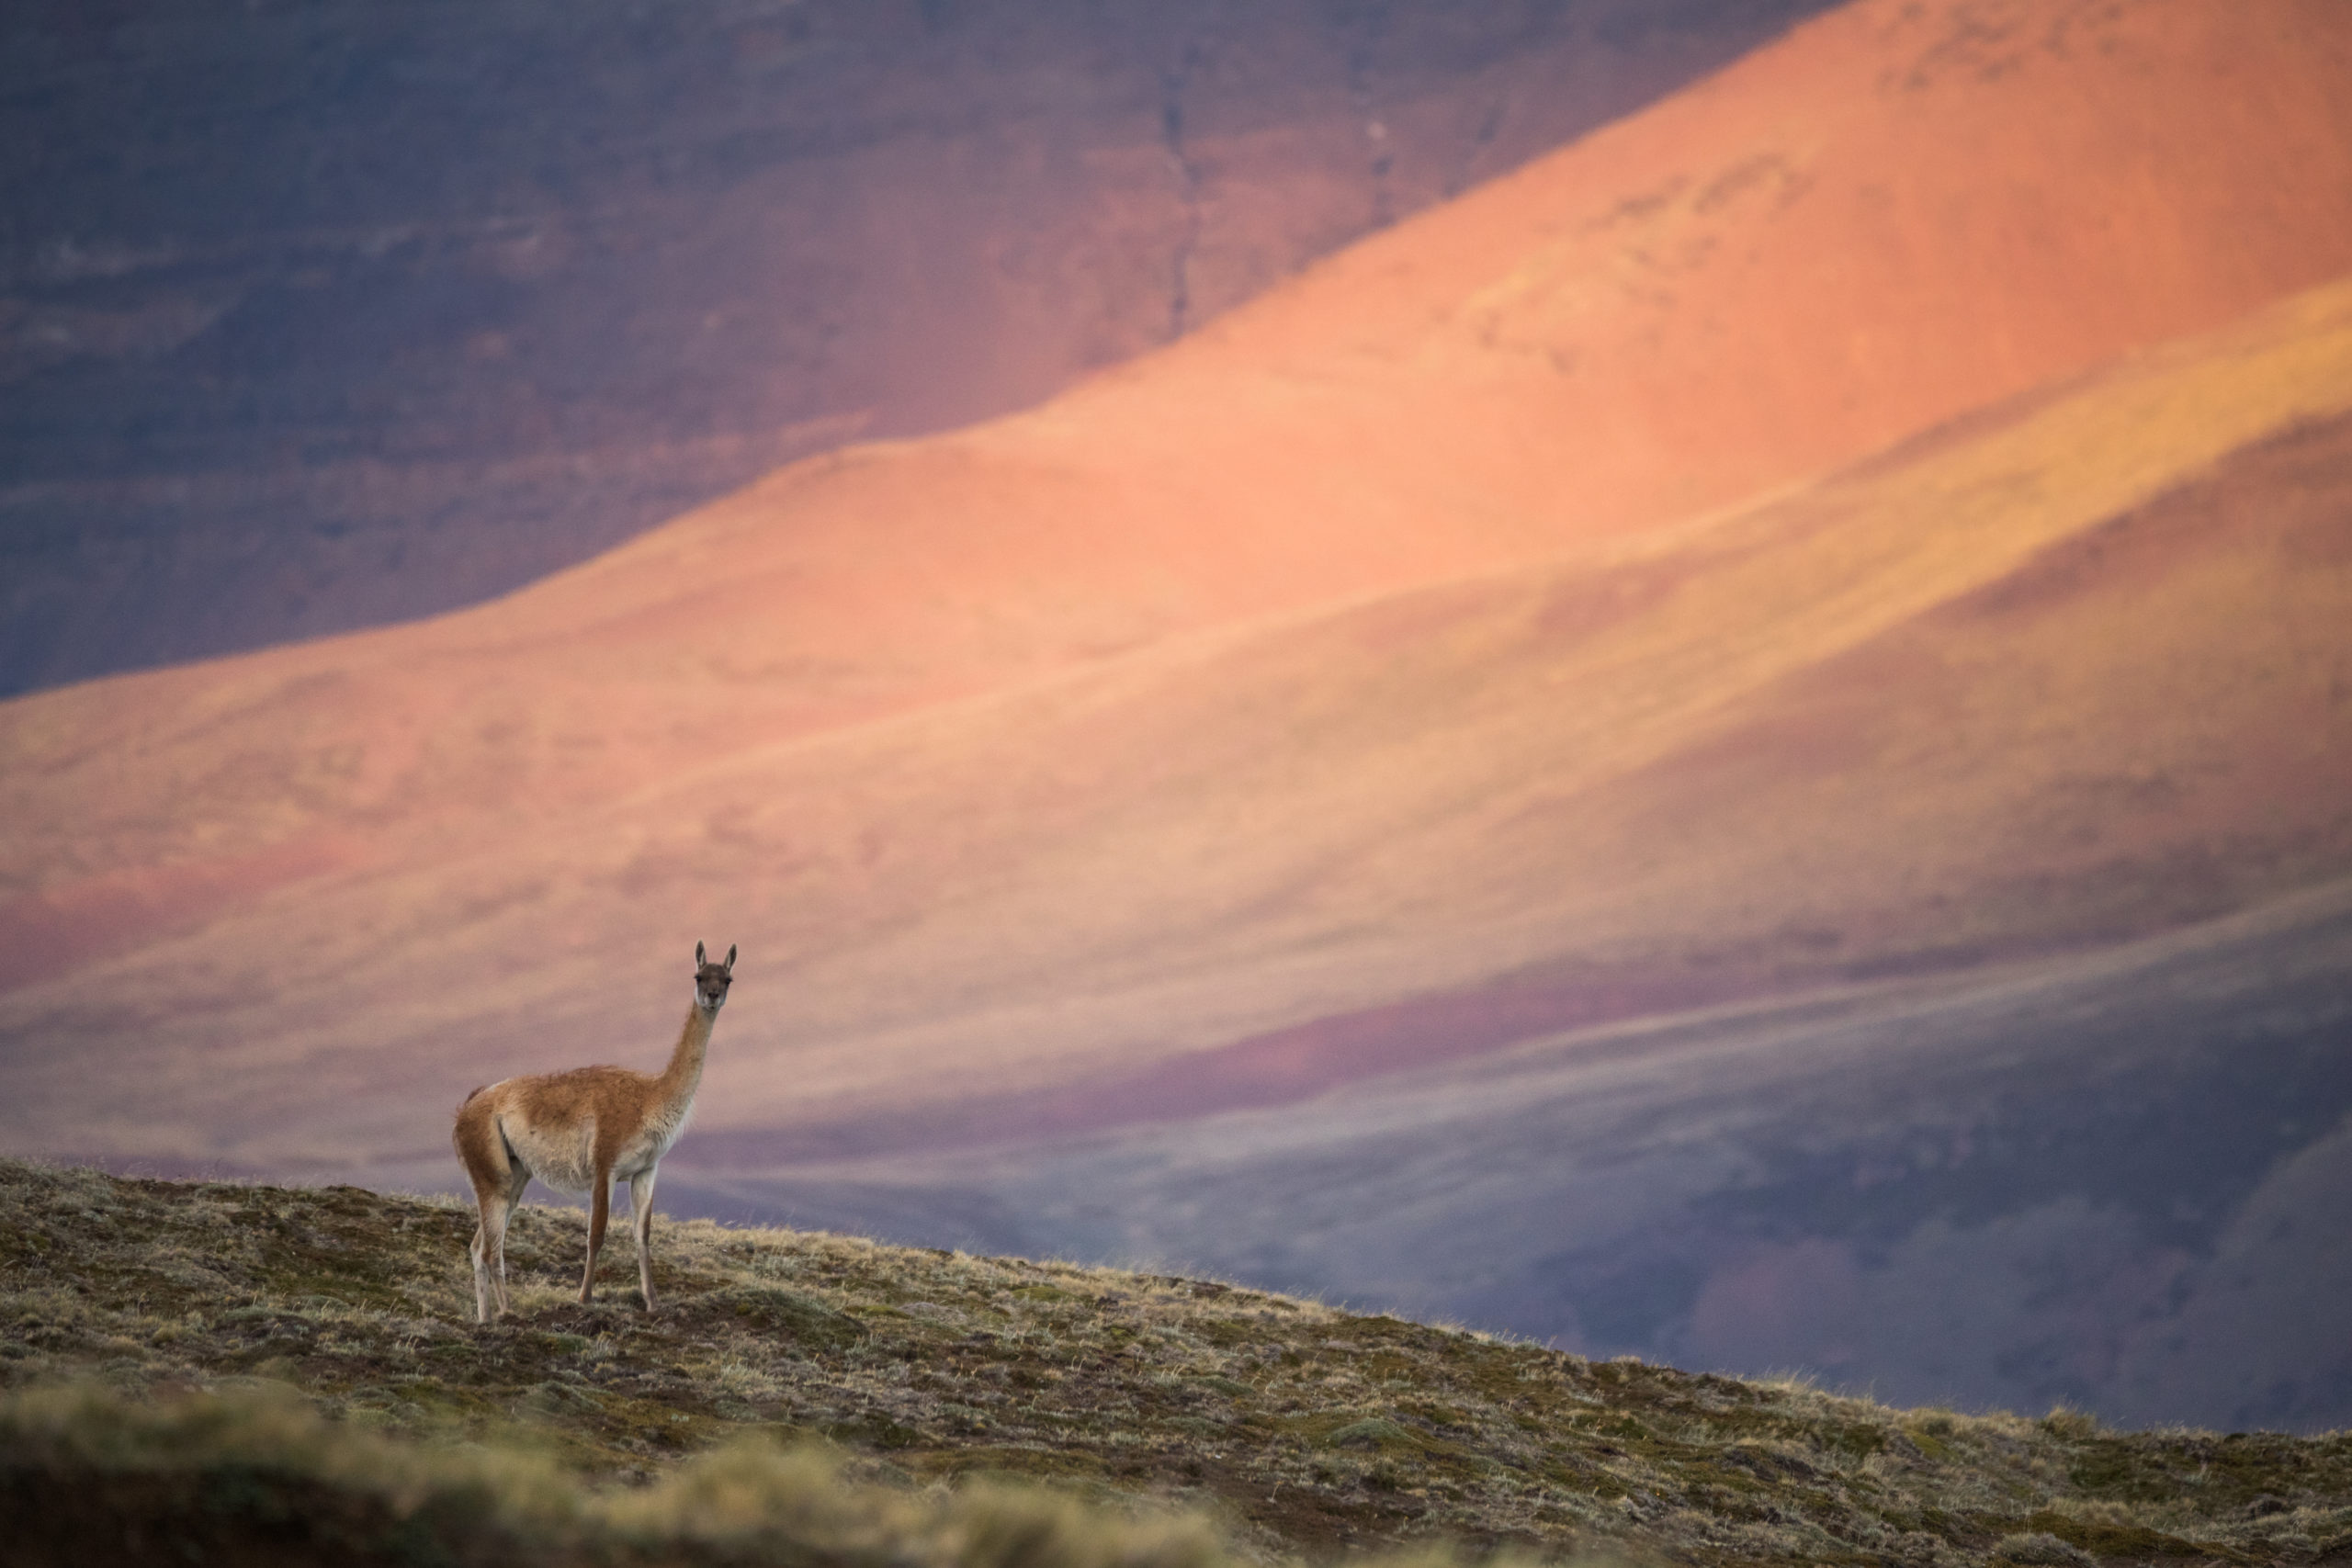 A llama standing on a mountain